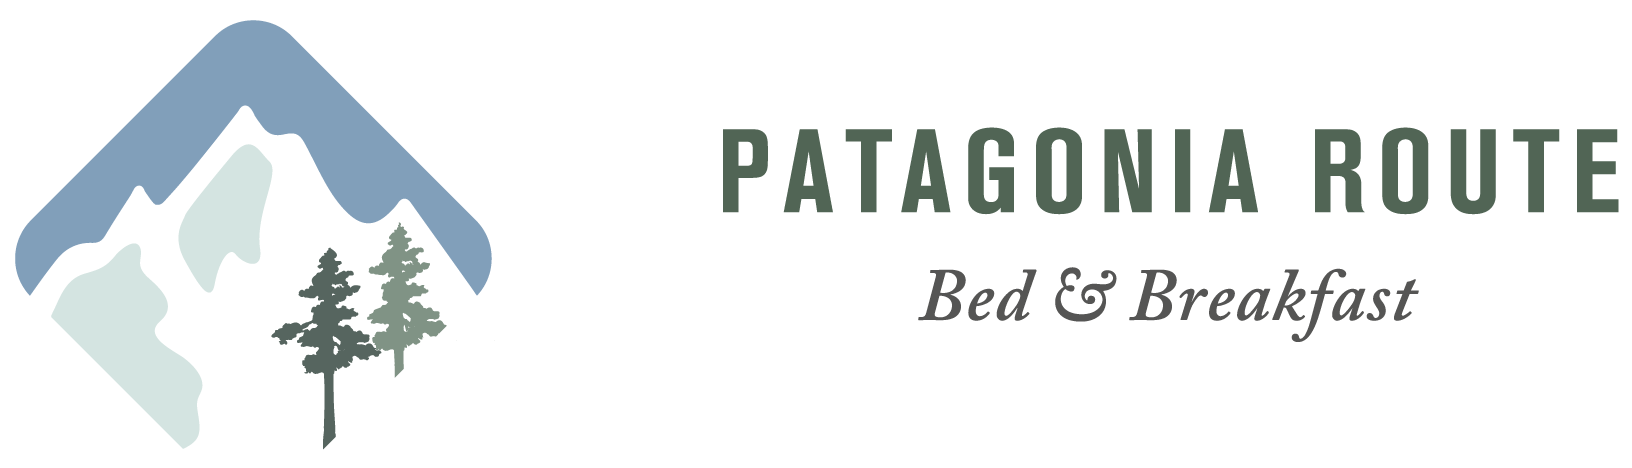 PATAGONIA ROUTE